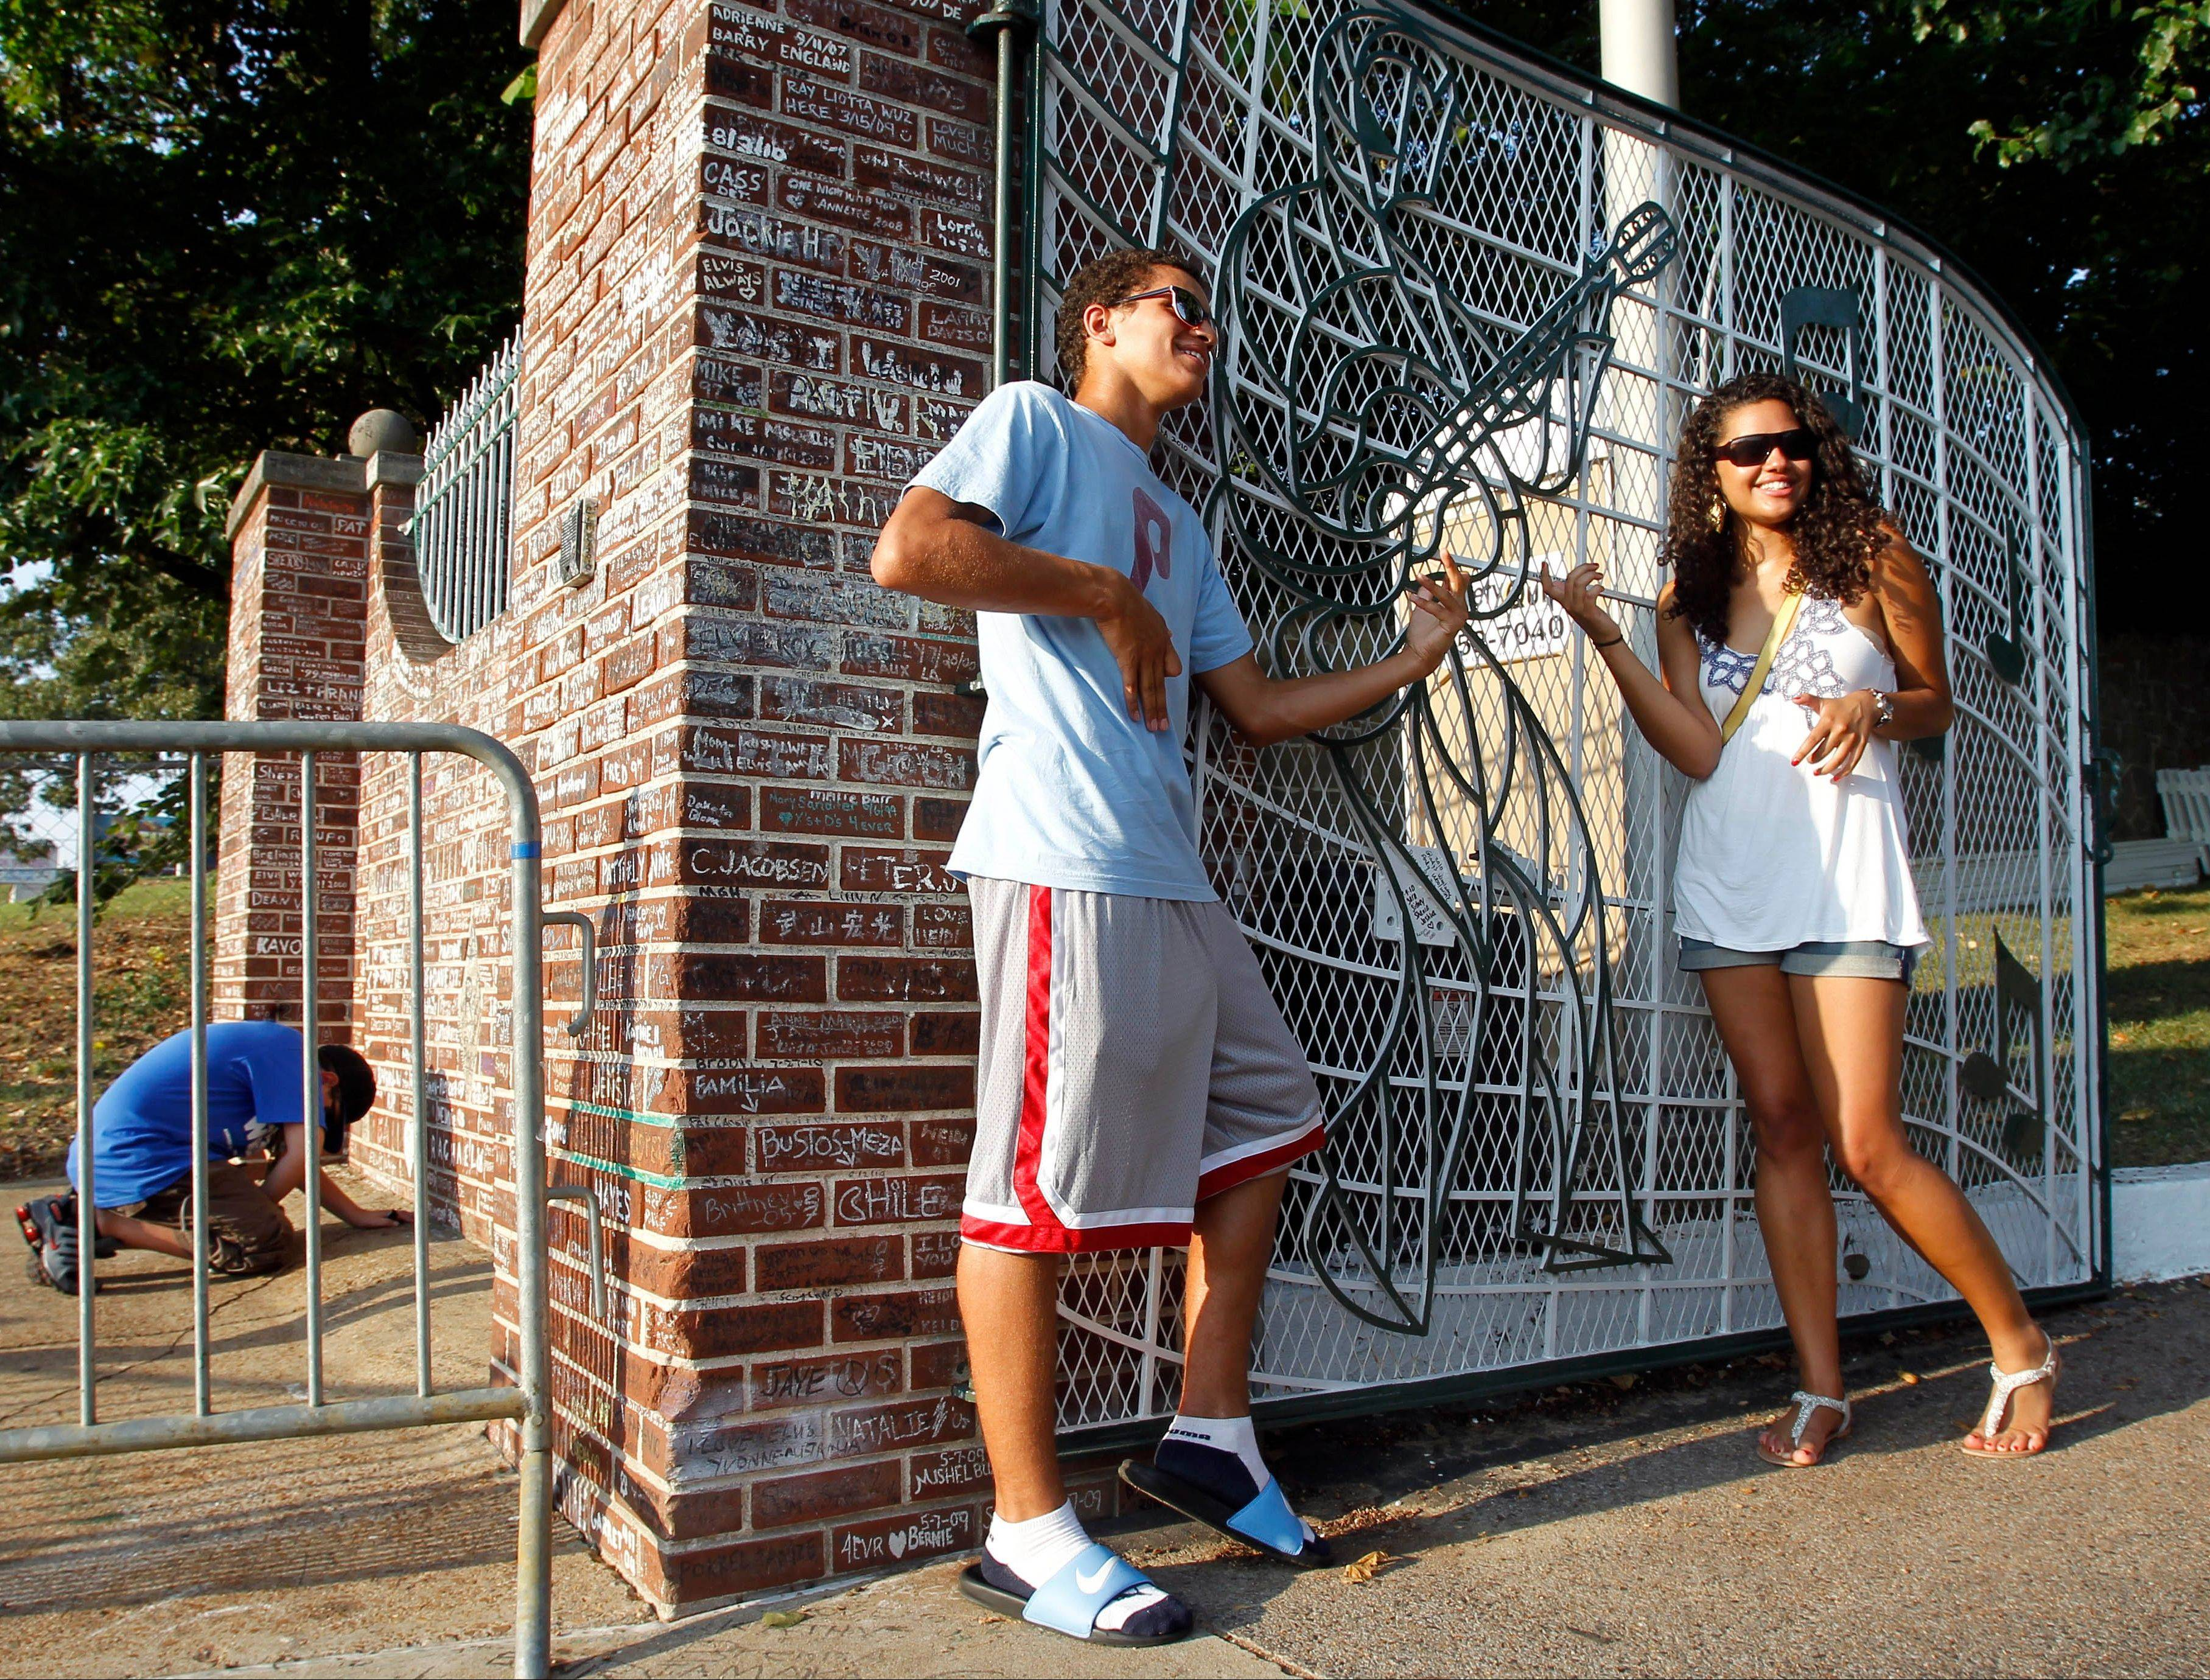 Those not lucky enough to get a ticket to enter Graceland can always pose at the gates.